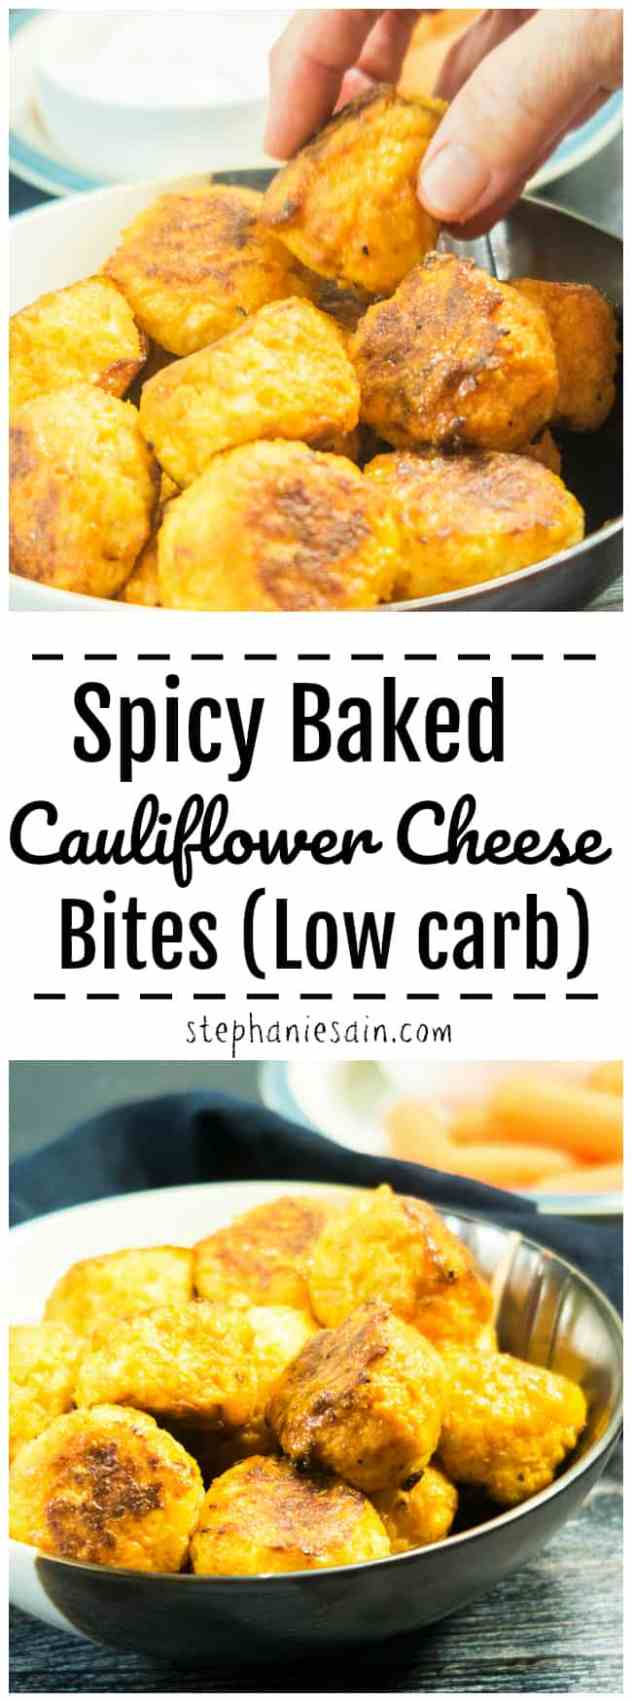 These Spicy Baked Cauliflower Cheese Bites are spicy, cheesy, flavorful little hand held bites perfect for an appetizer, game day, or even dinner with some sides. Gluten Free & Low Carb.